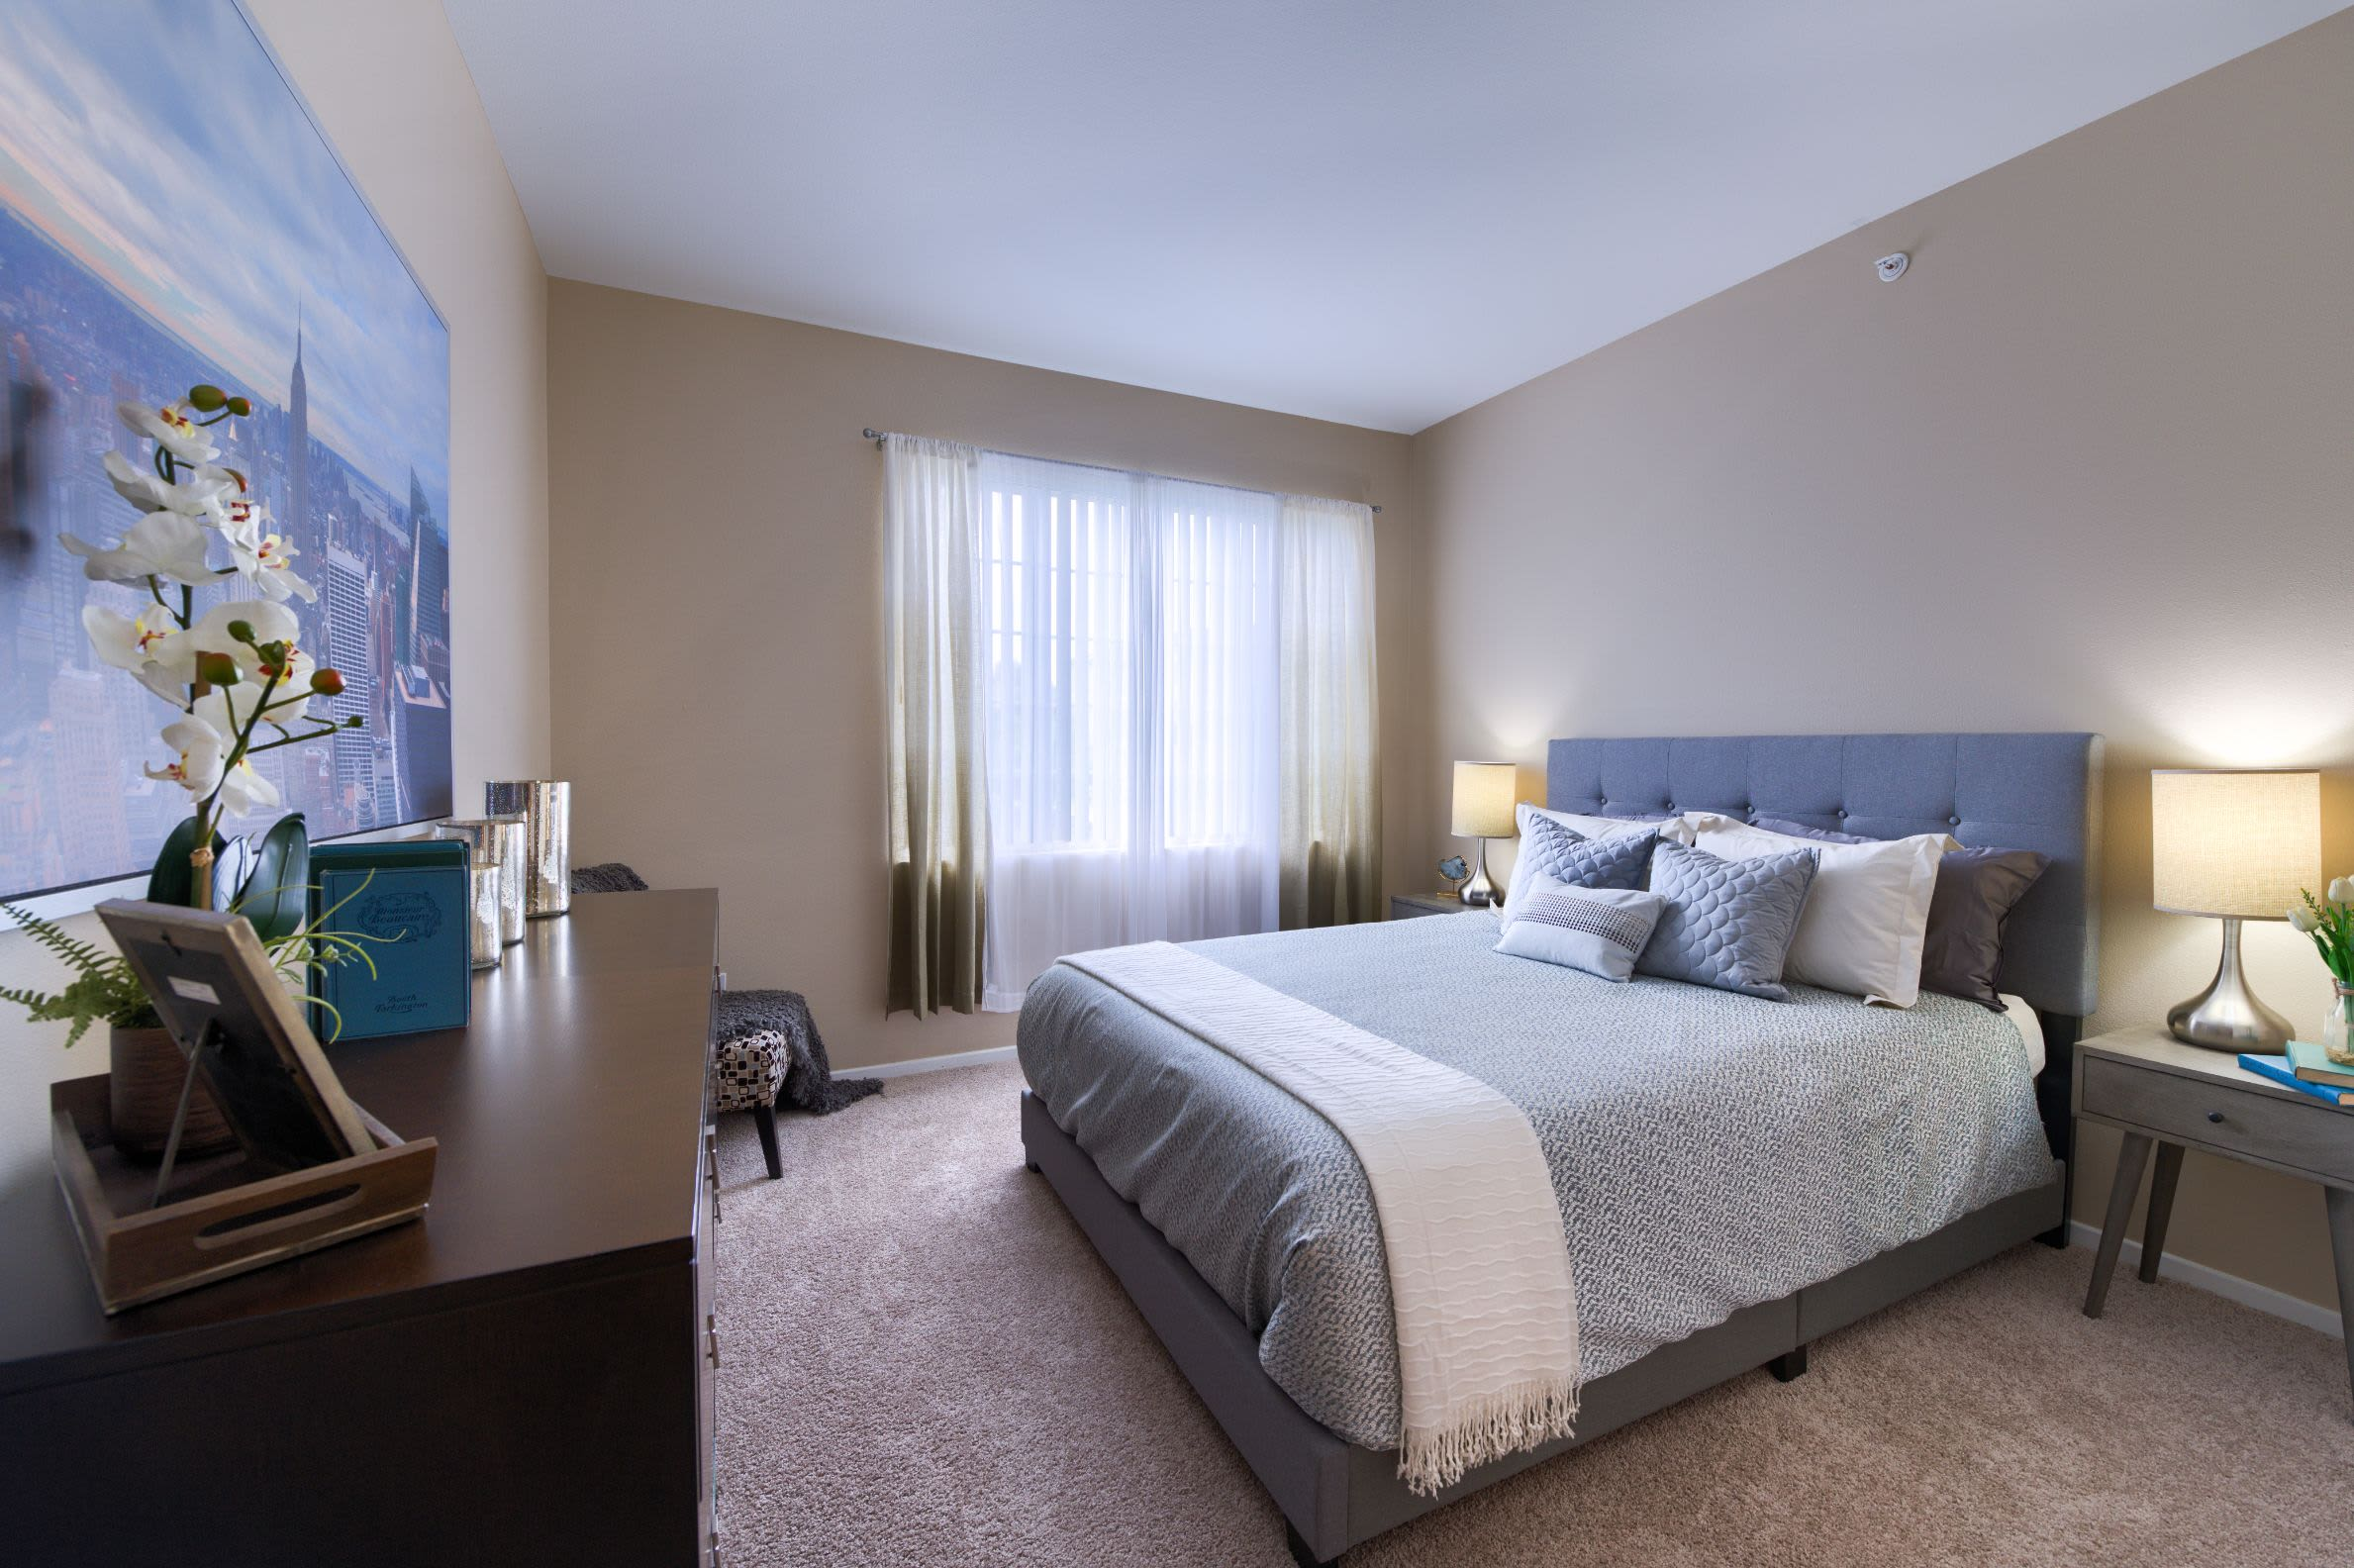 Bedroom with carpet flooring at Whisper Creek Apartment Homes in Lakewood, Colorado